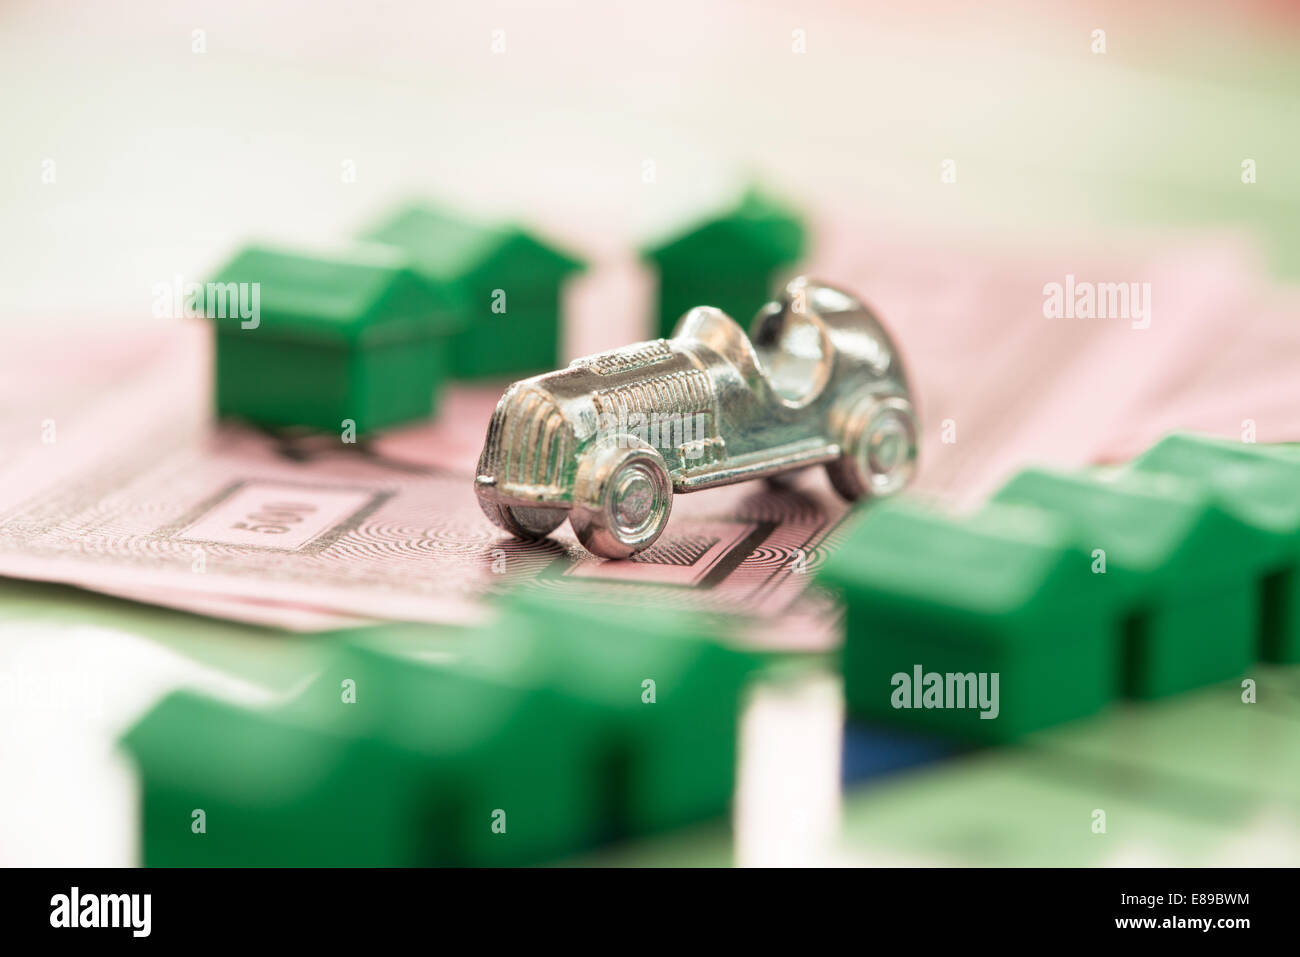 The Monopoly car game piece on yhe games' money with defocused houses on th board - Stock Image